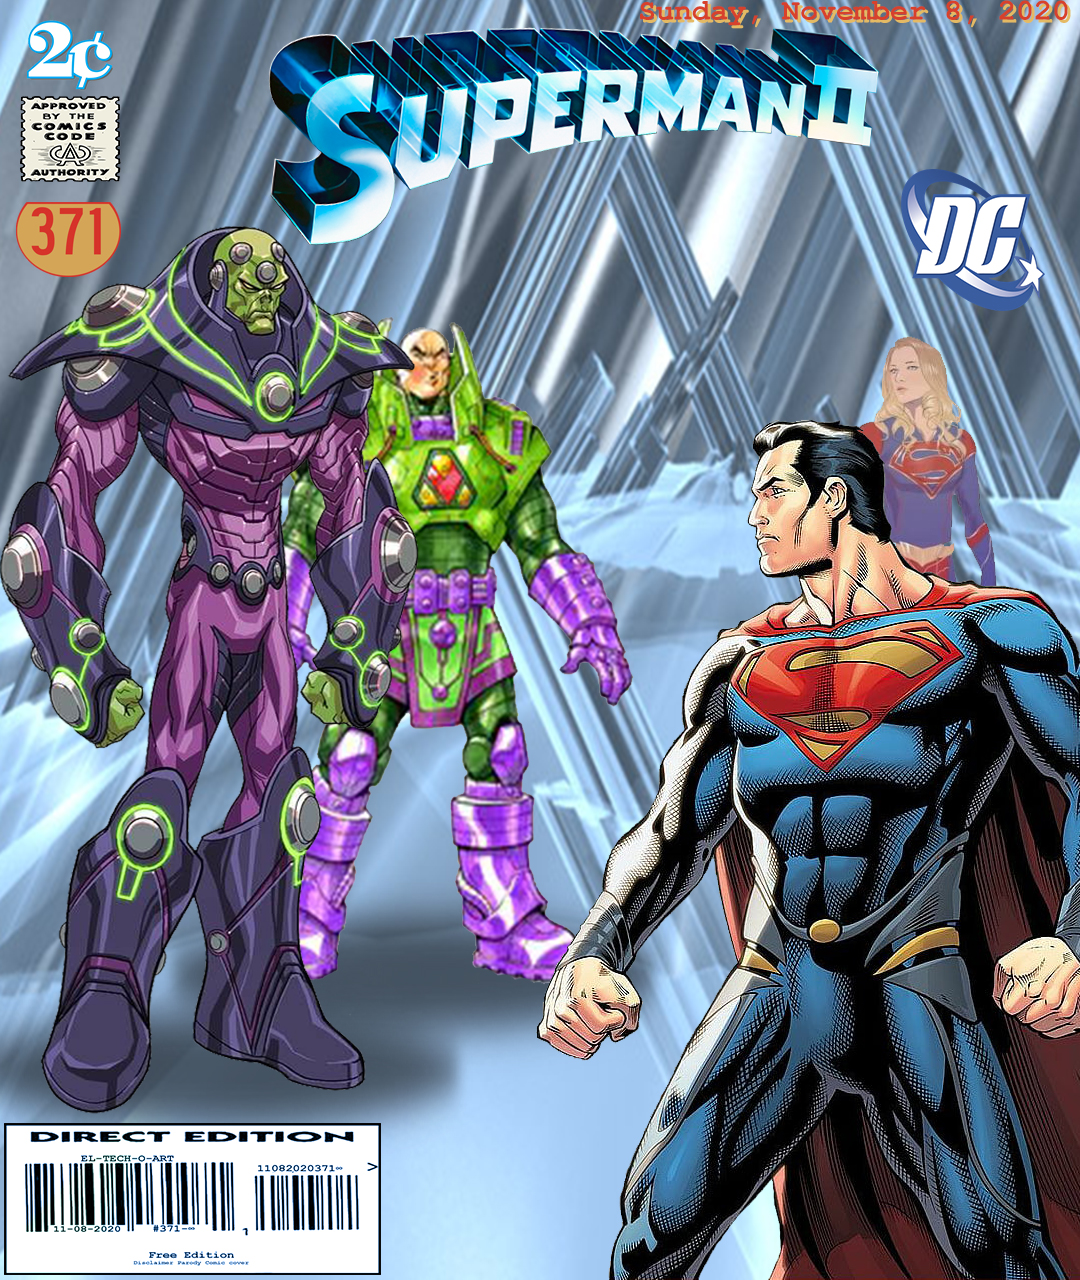 Fan Photoshop Edit Comic Cover Of Superman, Lex Luthor, Brainiac & Supergirl